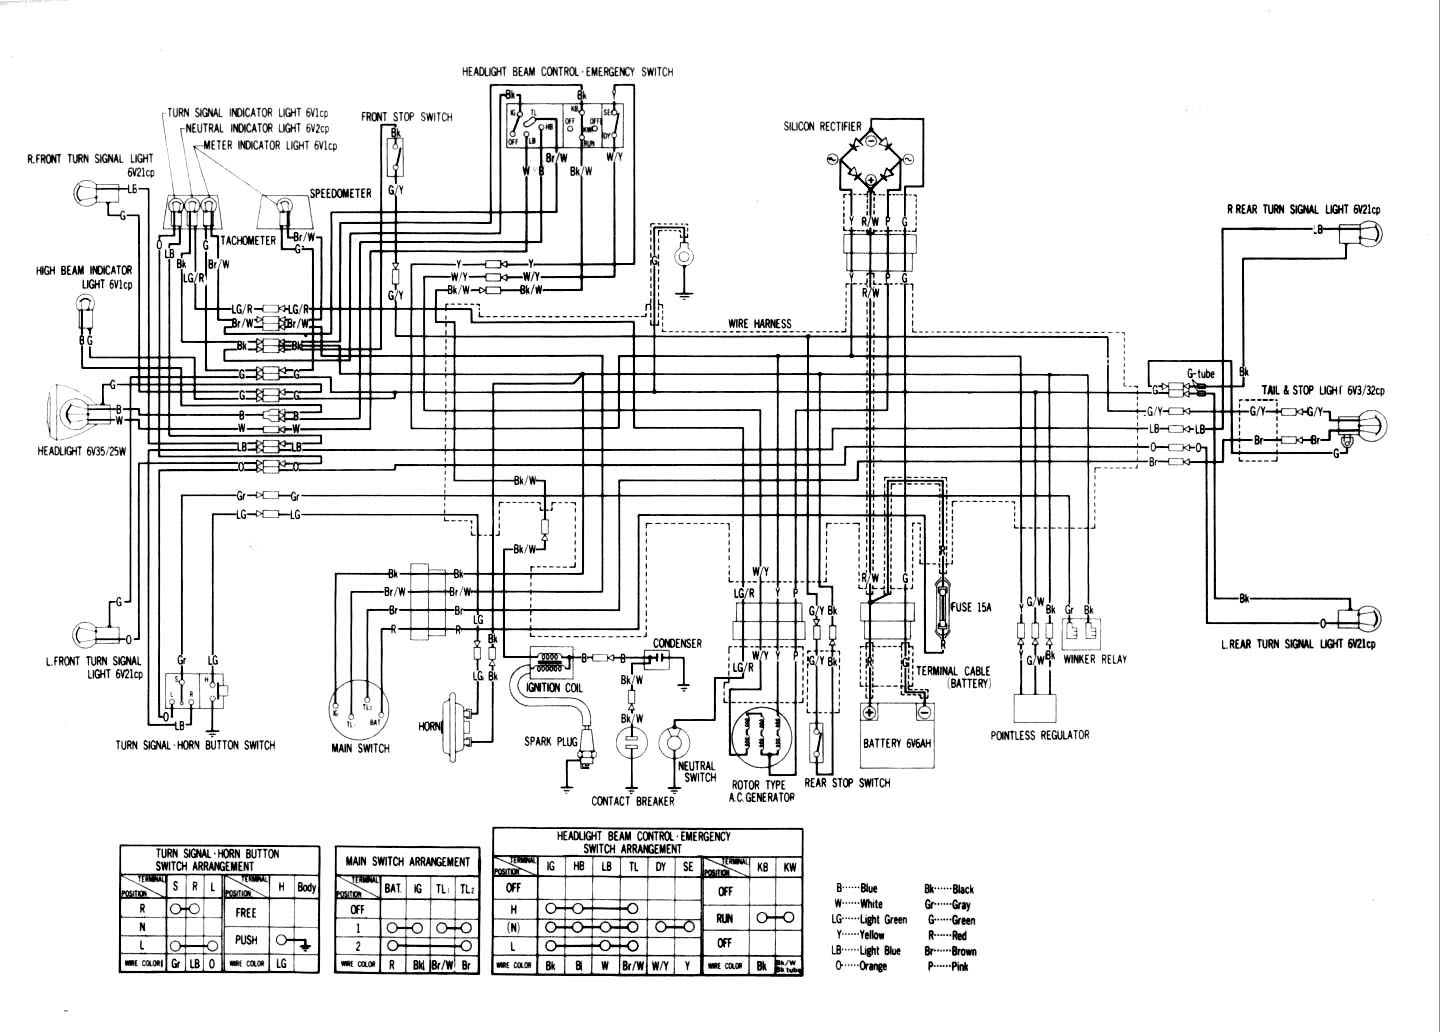 hight resolution of cat 3406e ecm wiring diagram 1998 cummins isx ecm wiring cat 3126 alternator wiring diagram cat